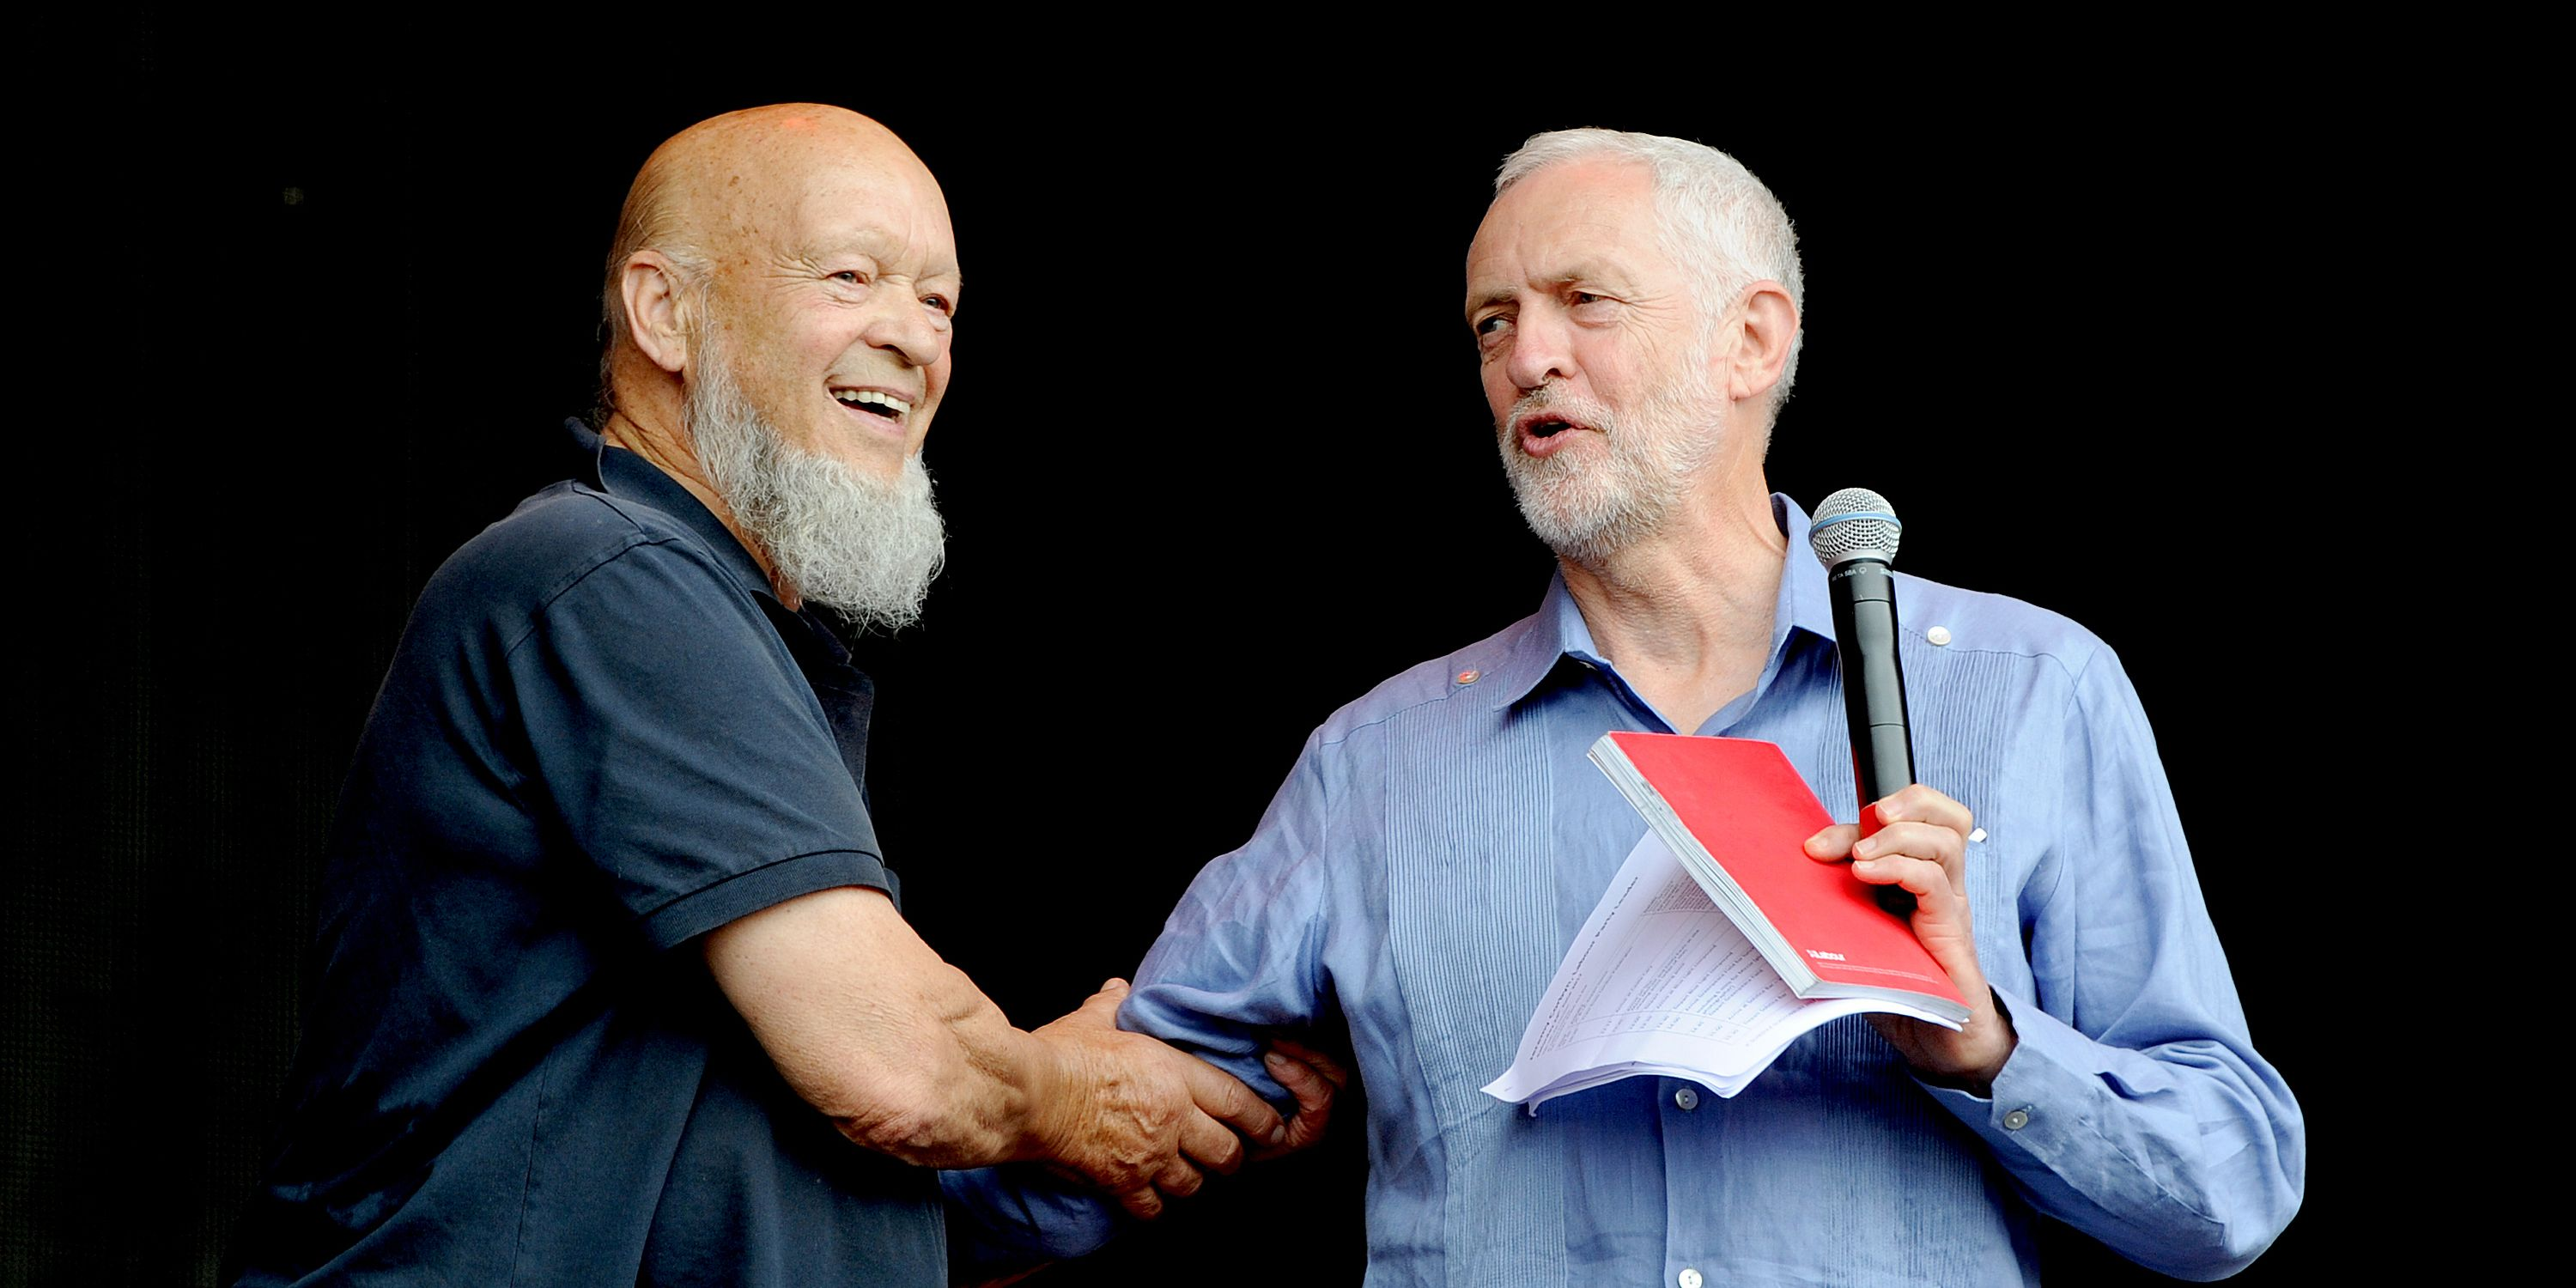 Jeremy Corbyn is introduced by Michael Eavis on the Pyramid stage on day 3 of the Glastonbury Festival 2017